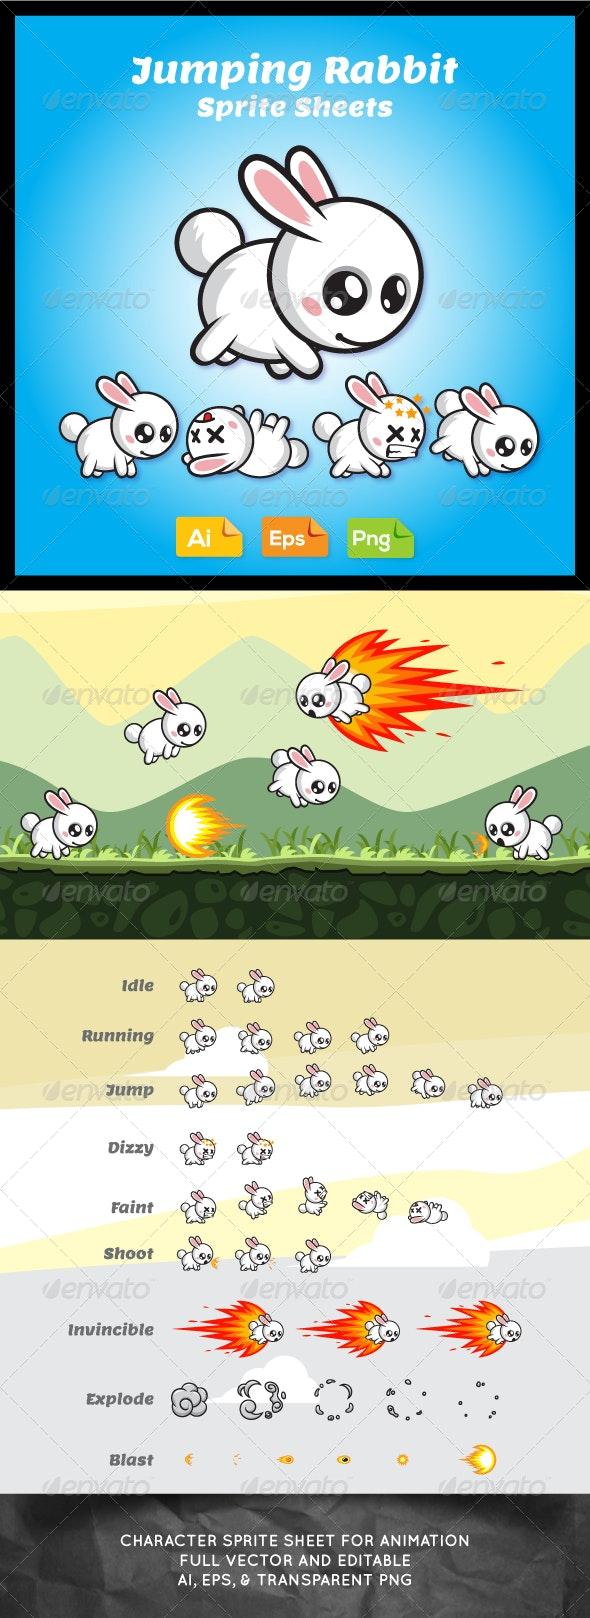 Jumping Game Character - Rabbit Sprite Sheet - Sprites Game Assets